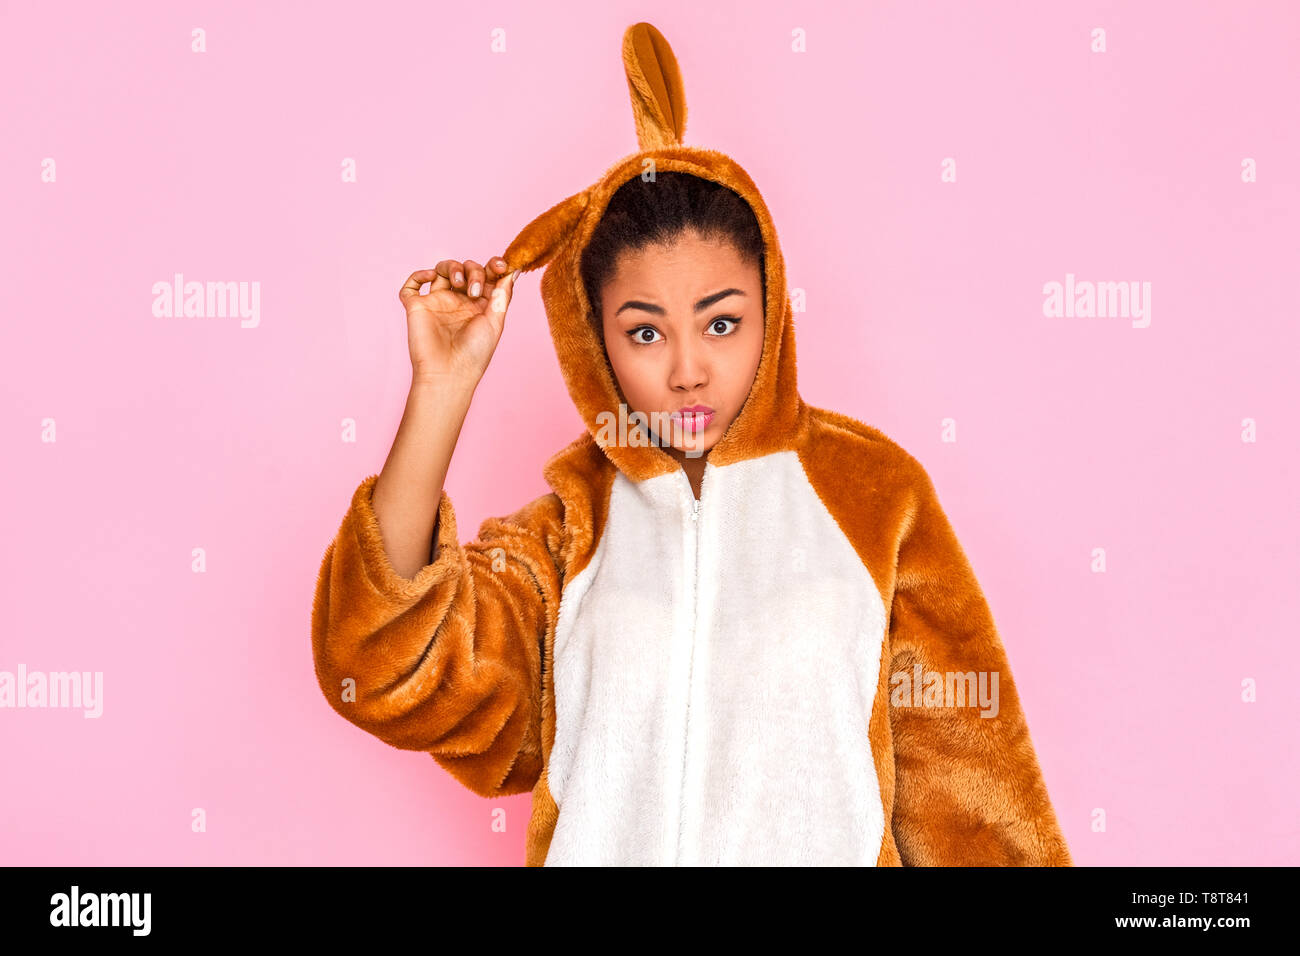 Young woman in bunny kigurumi standing isolated on pink background touching rabbit ear pouting lips grimacing to camera - Stock Image